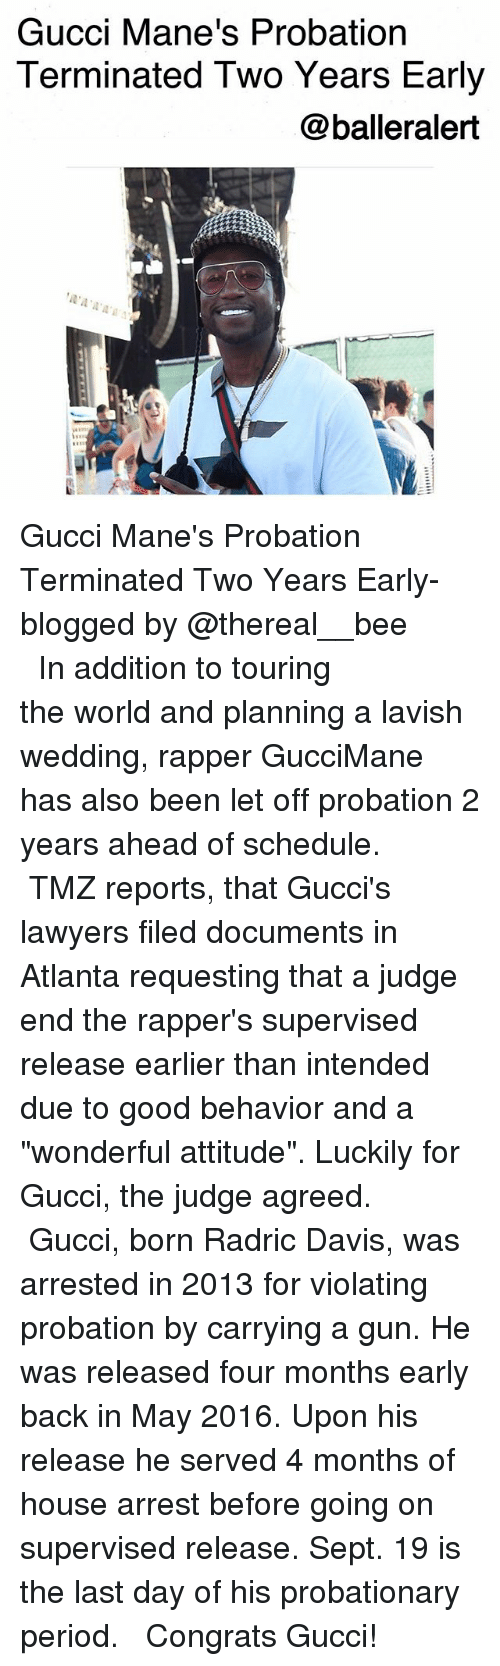 "Gucci, Memes, and Period: Gucci Mane's Probation  Terminated Two Years Early  @balleralert Gucci Mane's Probation Terminated Two Years Early-blogged by @thereal__bee ⠀⠀⠀⠀⠀⠀⠀⠀⠀ ⠀⠀ In addition to touring the world and planning a lavish wedding, rapper GucciMane has also been let off probation 2 years ahead of schedule. ⠀⠀⠀⠀⠀⠀⠀⠀⠀ ⠀⠀ TMZ reports, that Gucci's lawyers filed documents in Atlanta requesting that a judge end the rapper's supervised release earlier than intended due to good behavior and a ""wonderful attitude"". Luckily for Gucci, the judge agreed. ⠀⠀⠀⠀⠀⠀⠀⠀⠀ ⠀⠀ Gucci, born Radric Davis, was arrested in 2013 for violating probation by carrying a gun. He was released four months early back in May 2016. Upon his release he served 4 months of house arrest before going on supervised release. Sept. 19 is the last day of his probationary period. ⠀⠀⠀⠀⠀⠀⠀⠀⠀ ⠀⠀ Congrats Gucci!"